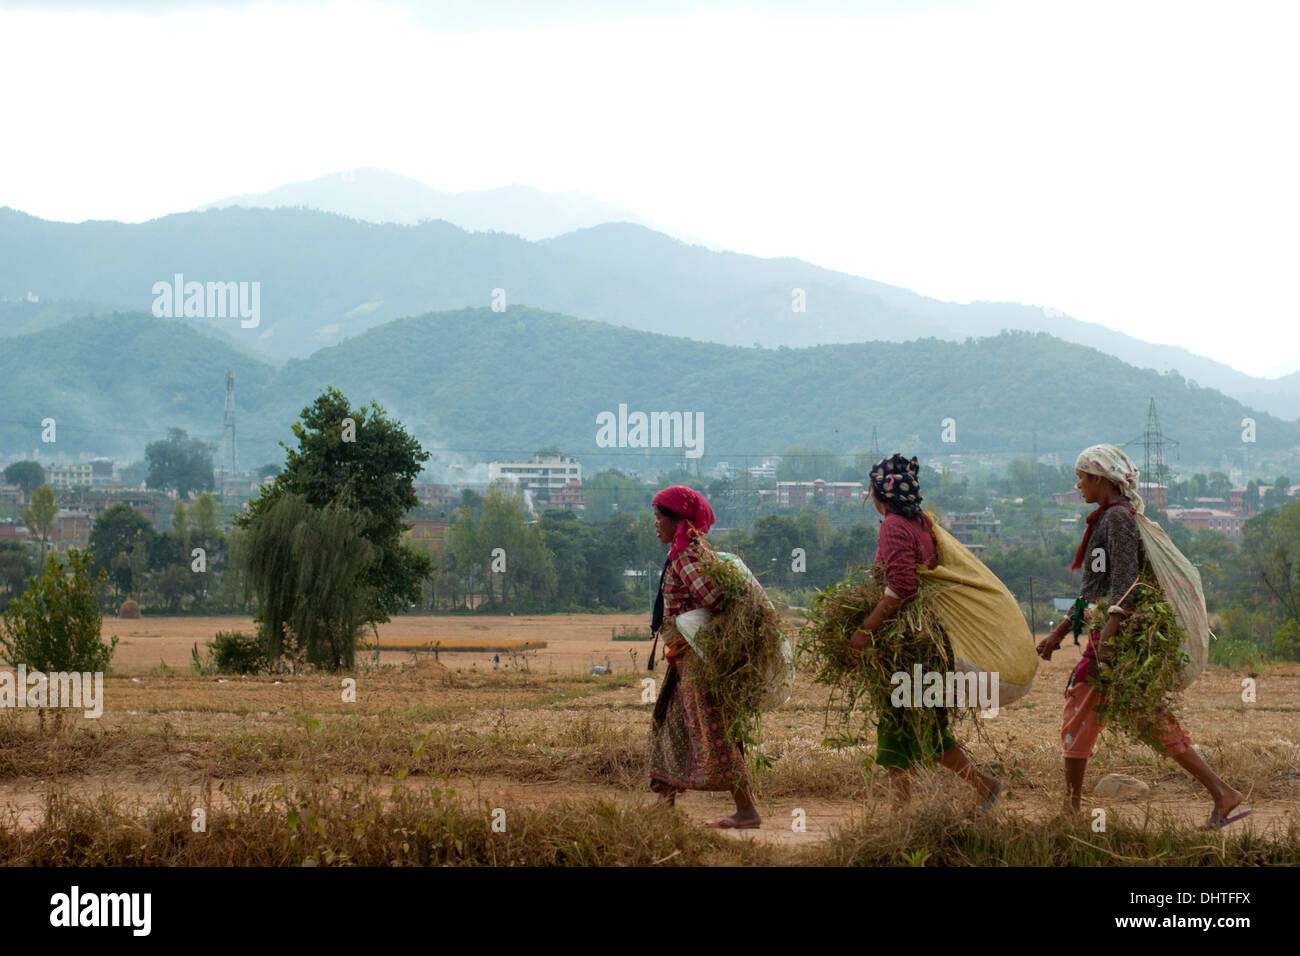 Farmers back to home with grass for livestock in Nepal. - Stock Image